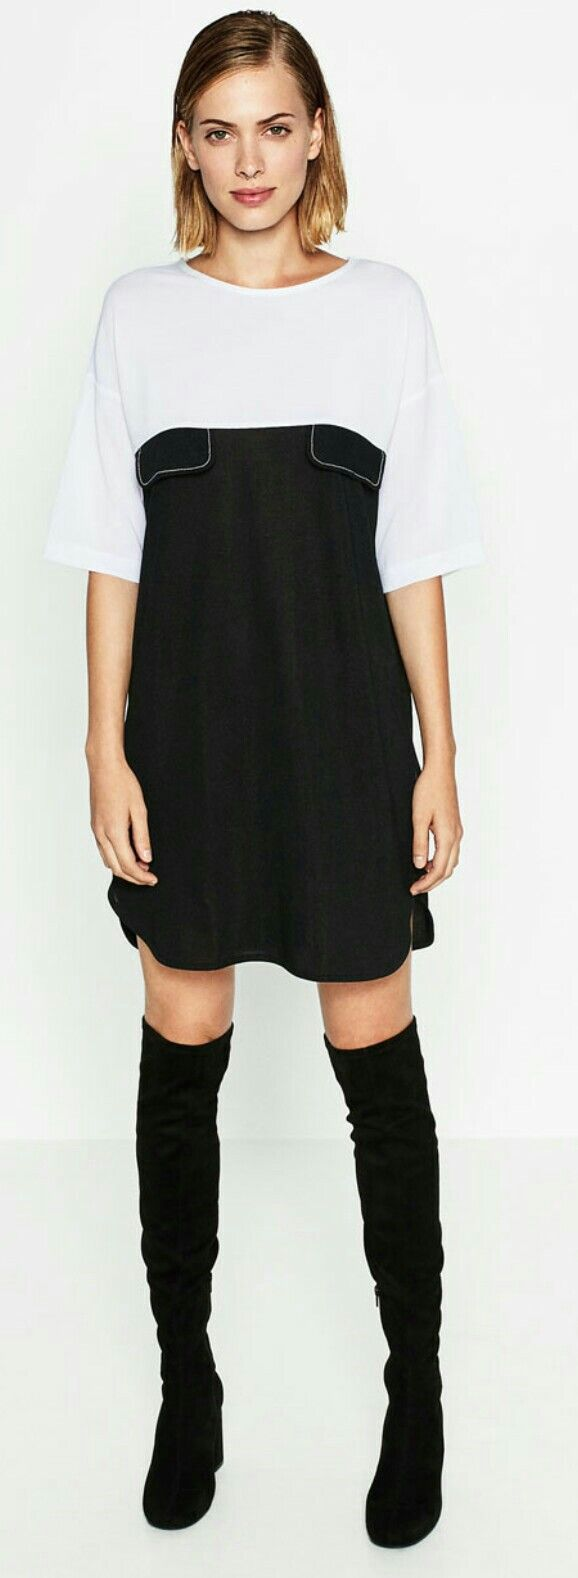 Zara black and white winter dress above-knee boots